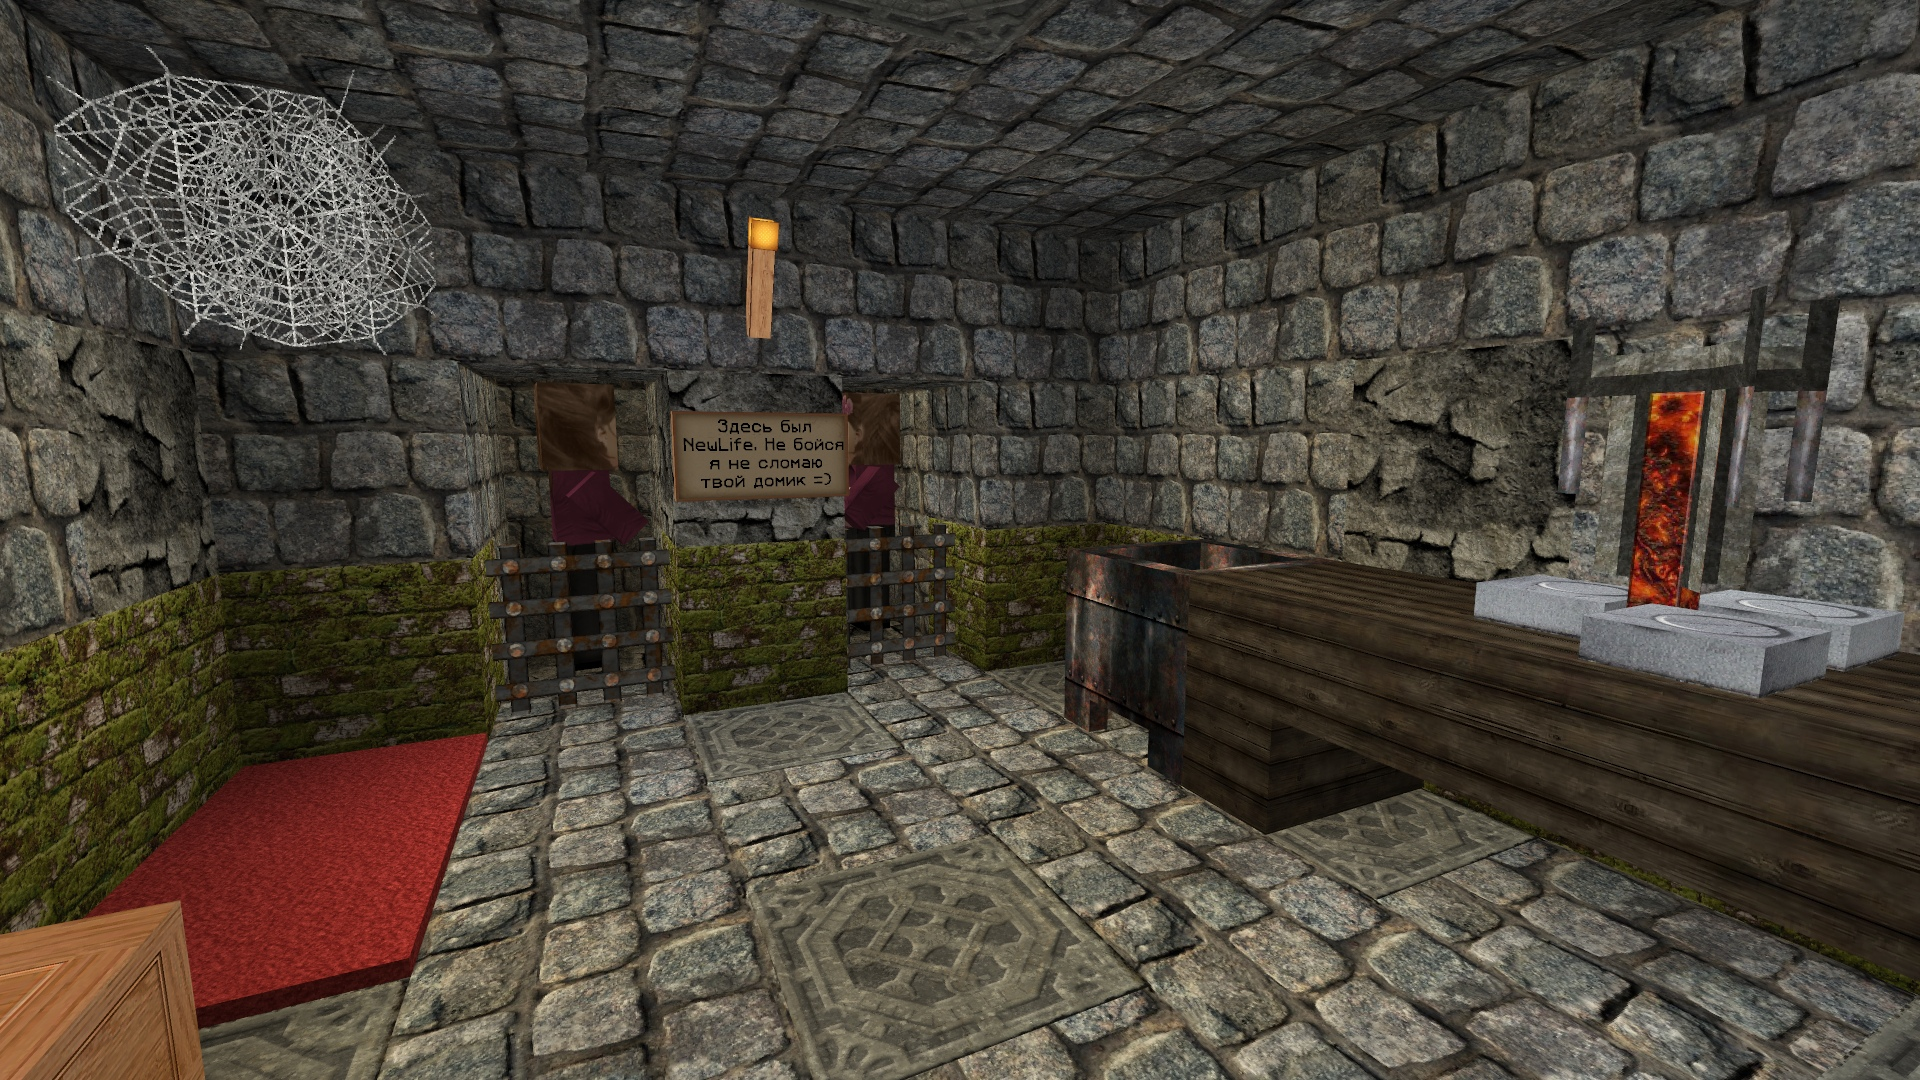 Newlife Hd Texture Pack 256x256 For Streaming Resource Packs Mapping And Modding Java Edition Minecraft Forum Minecraft Forum